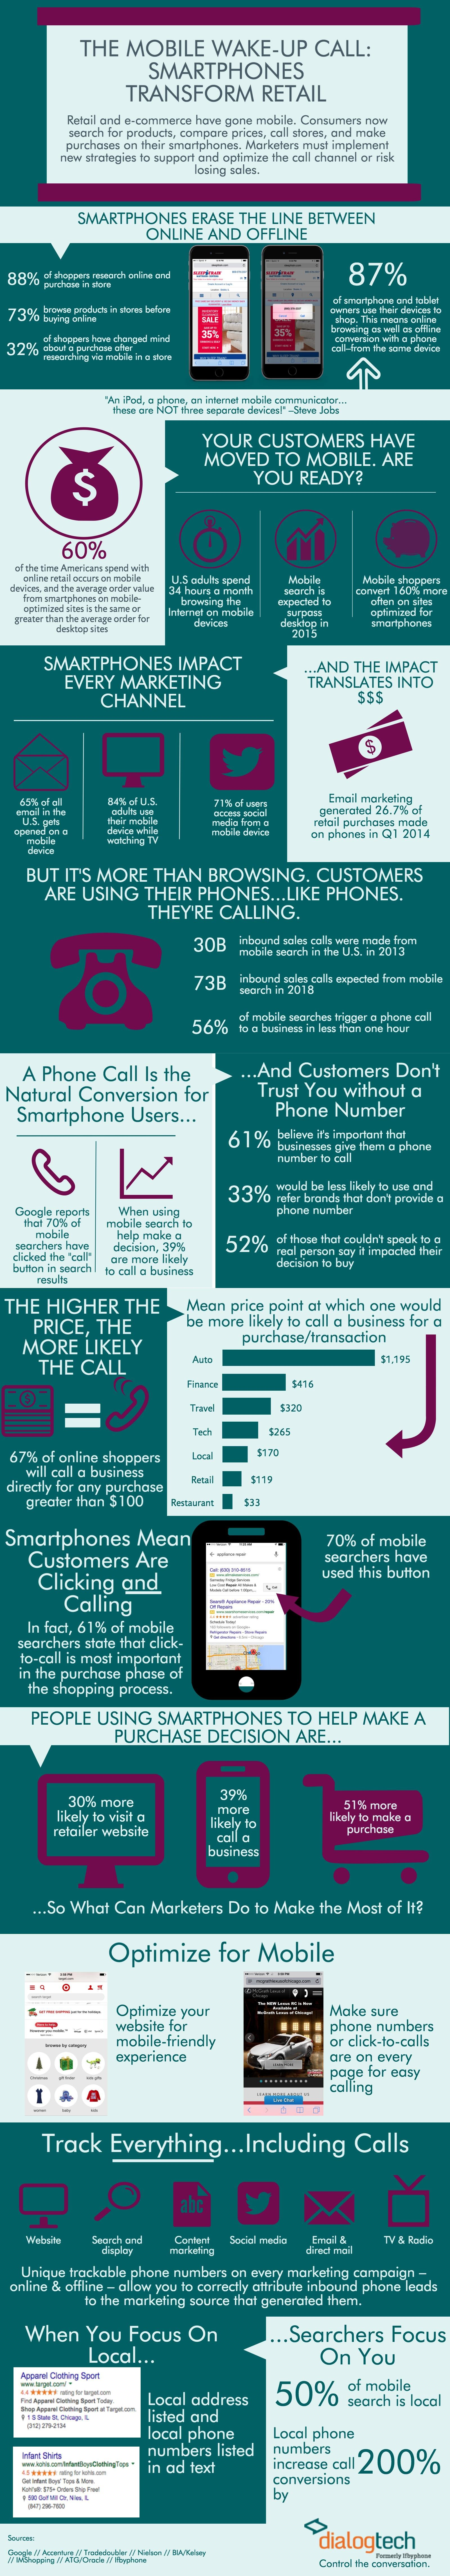 mobile retail dialogtech infographic